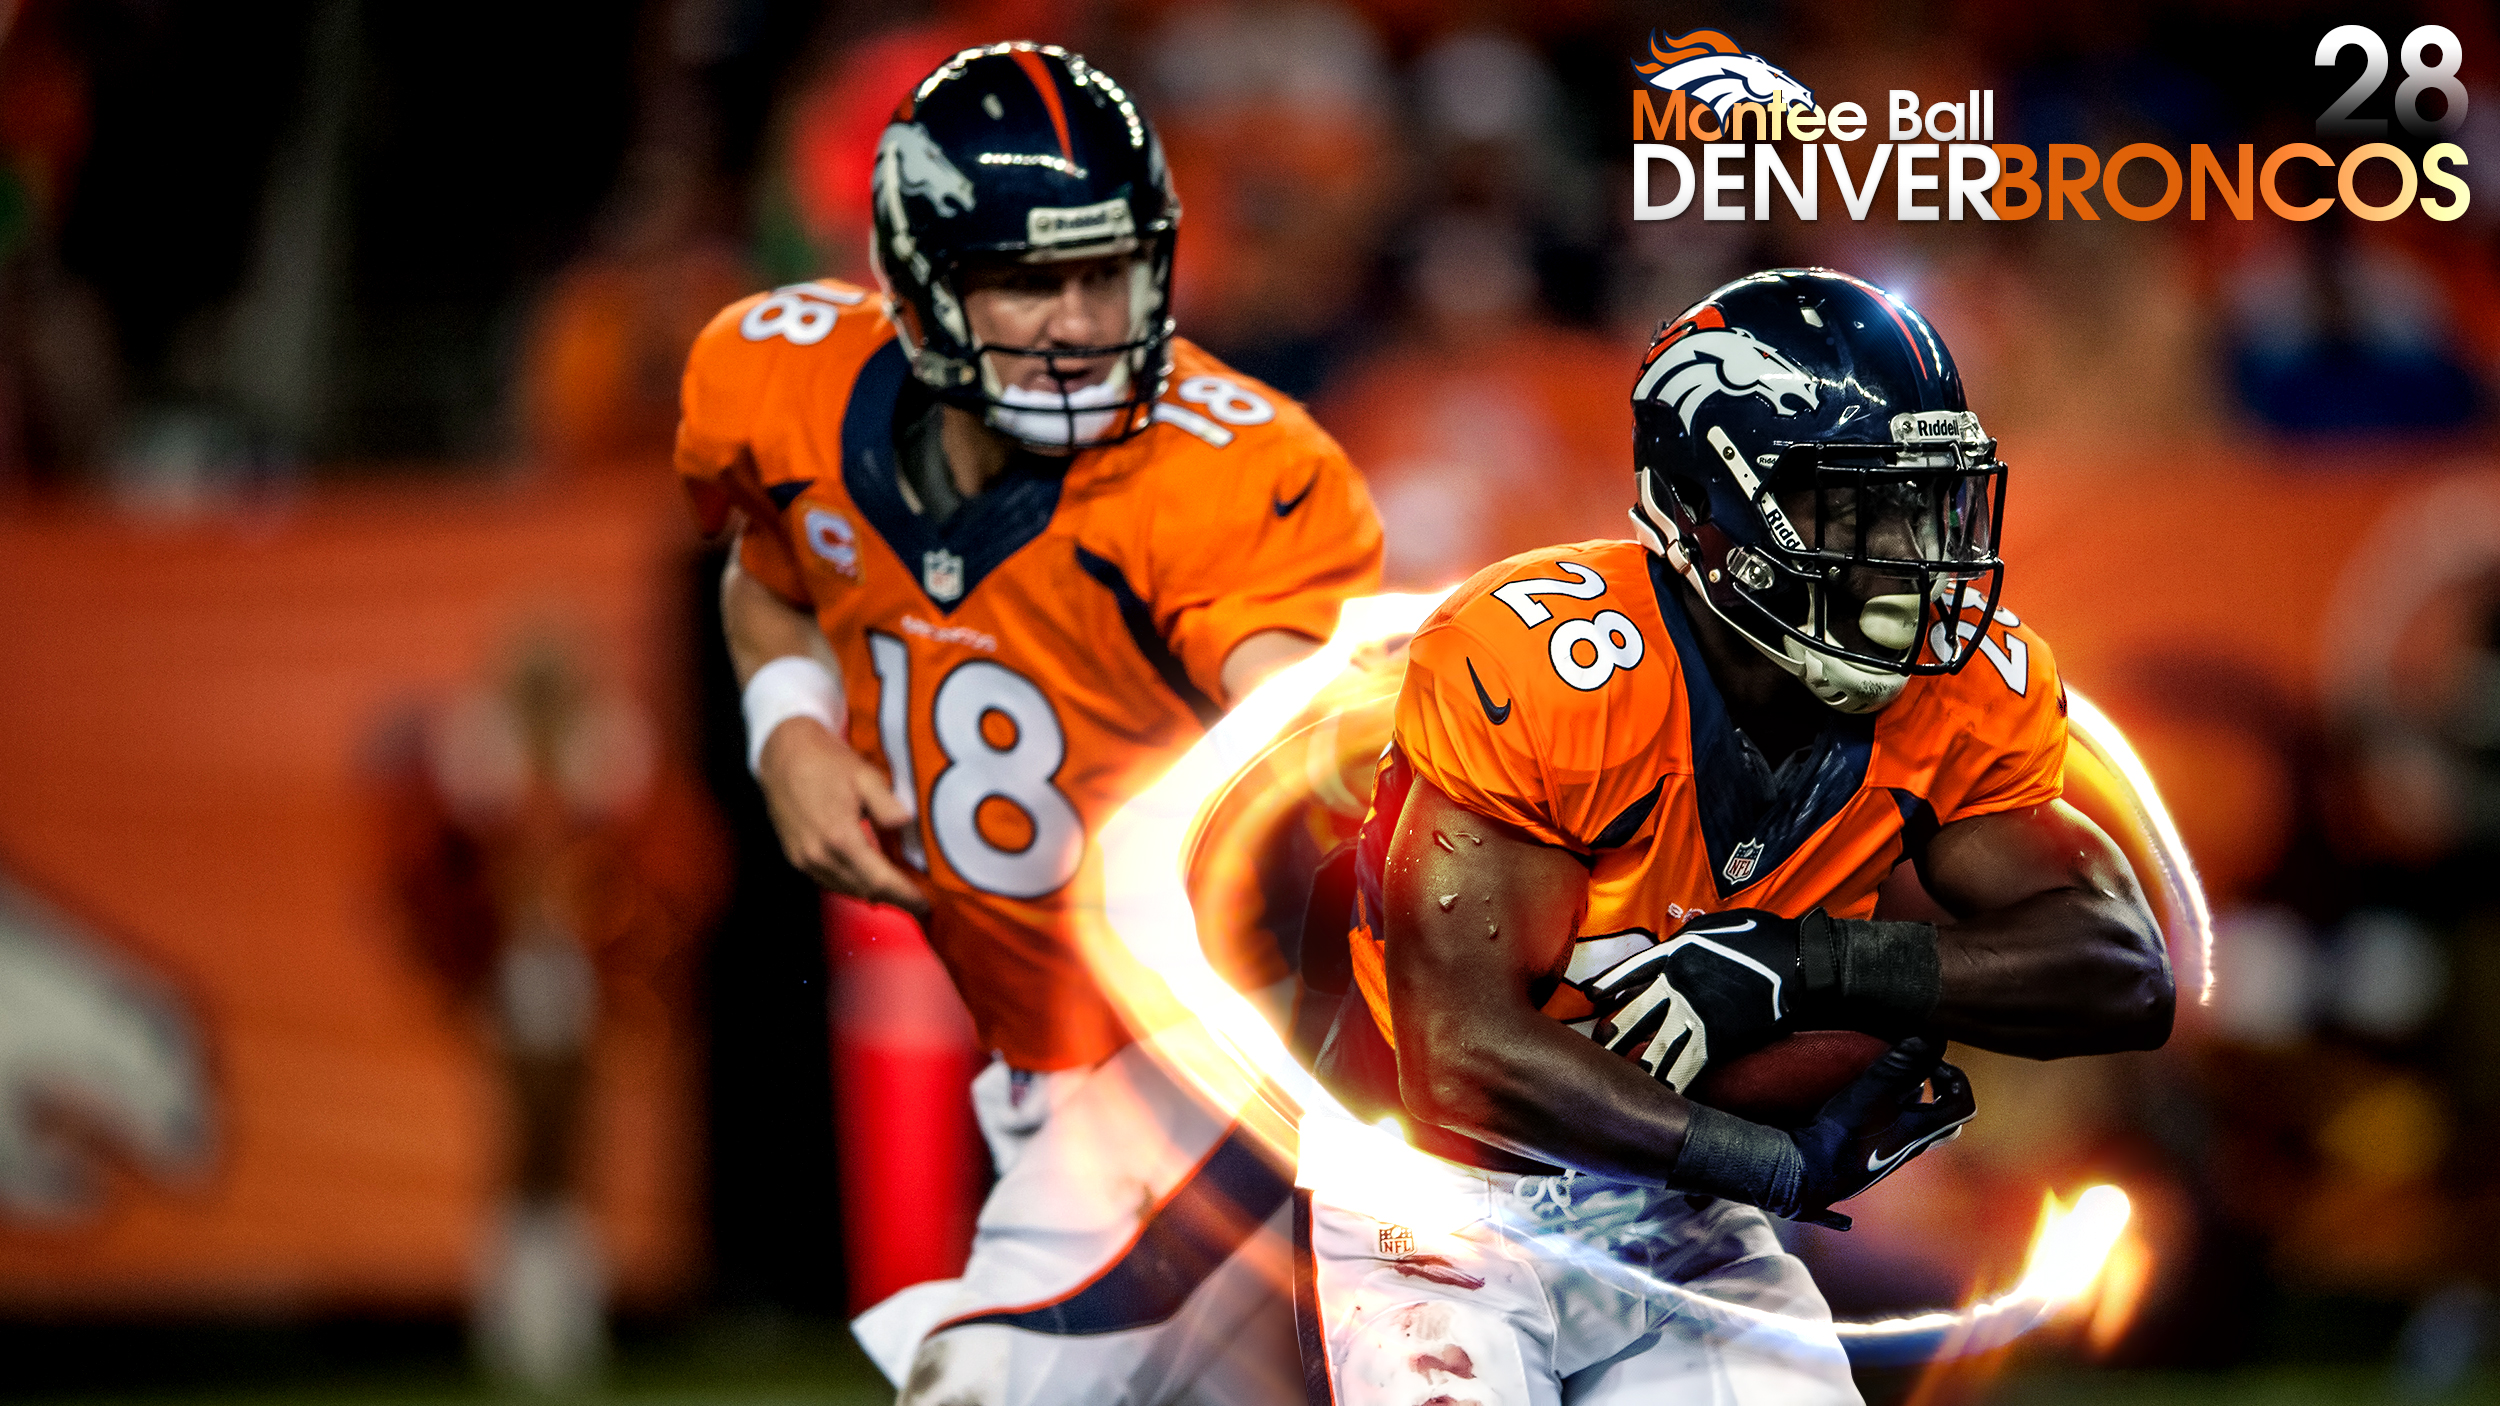 Denver broncos von miller wallpaper miller was drafted by the dec 23 2013 englewood colo chaos has become the norm for the denver broncos voltagebd Gallery